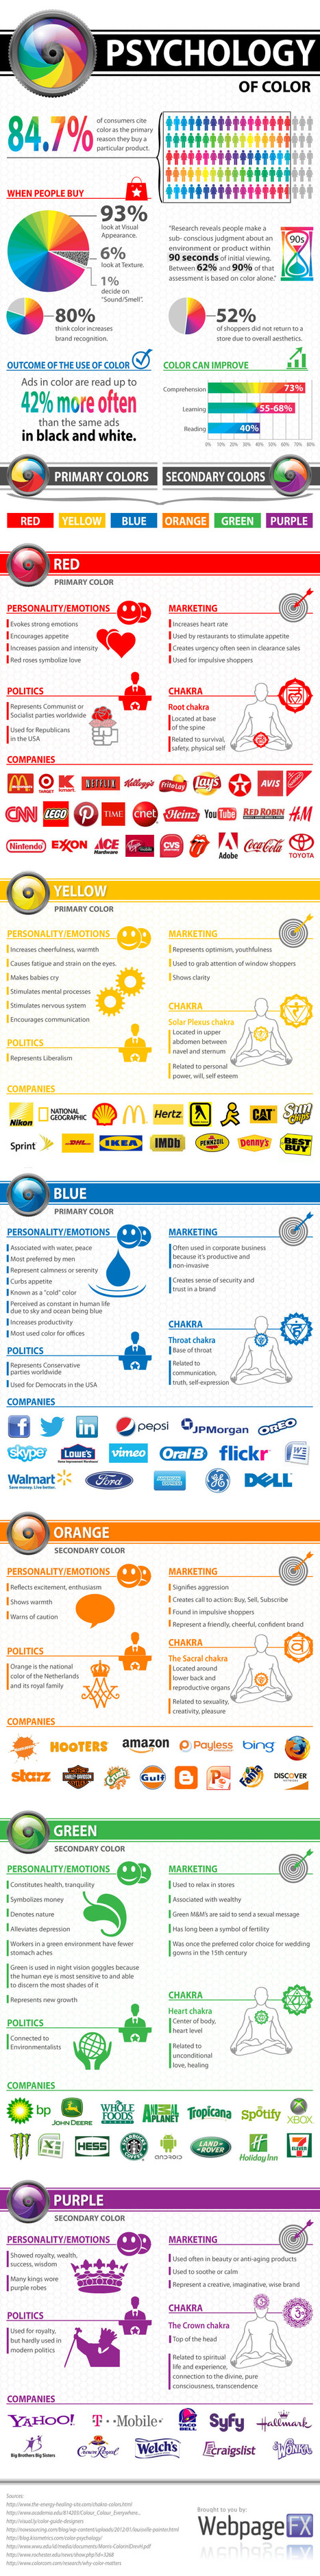 Psychology of Color in Marketing Infographic | eMarketing Live Chat | Scoop.it